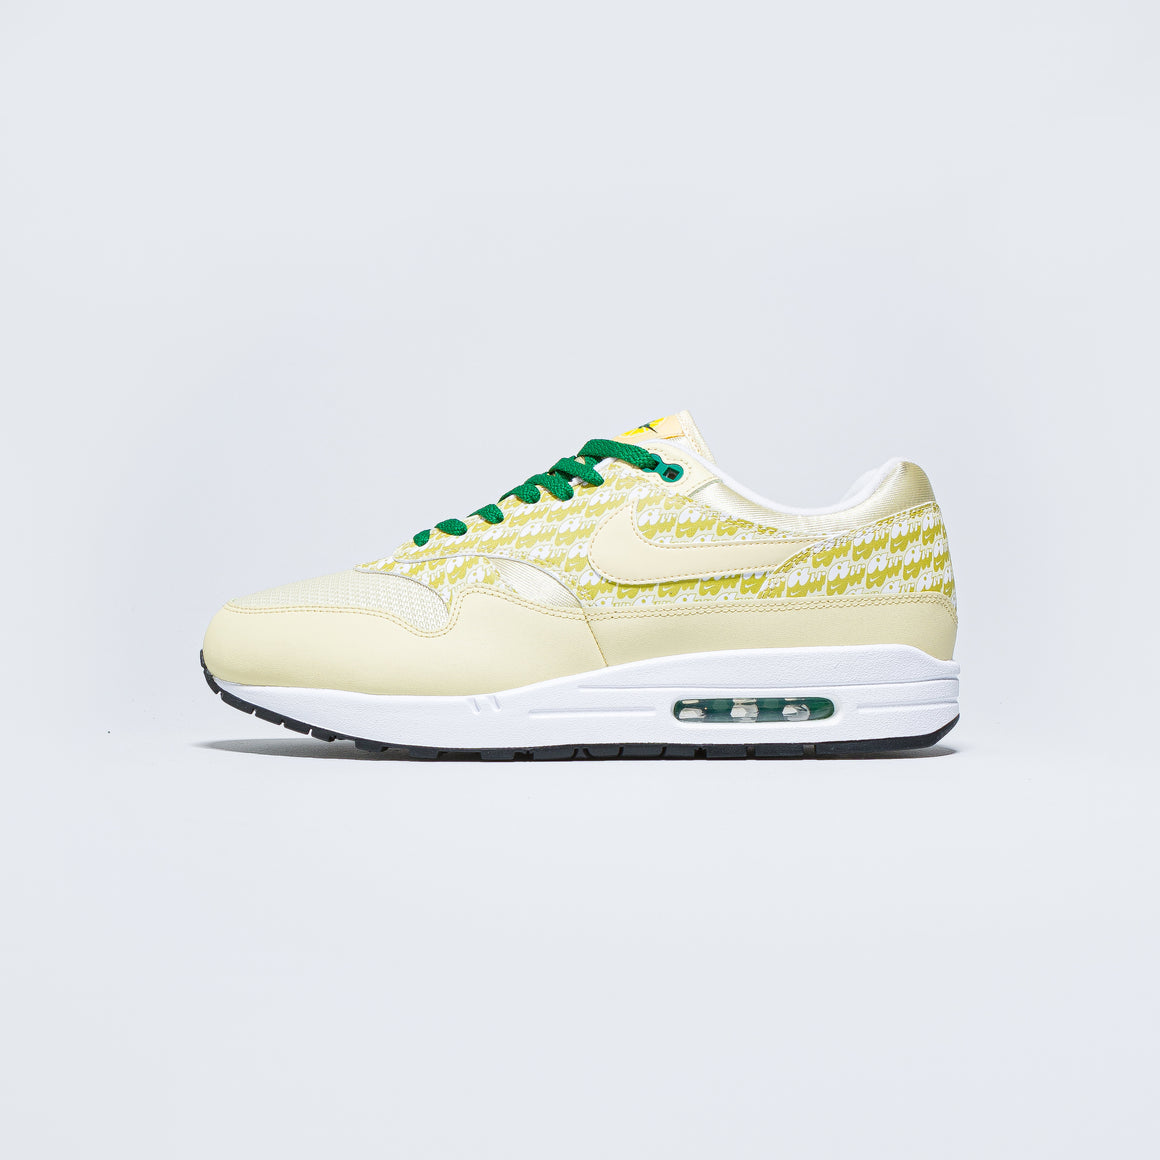 Nike - Air Max 1 Premium - Lemonade/Lemonade-Pine Green-True White - Up There